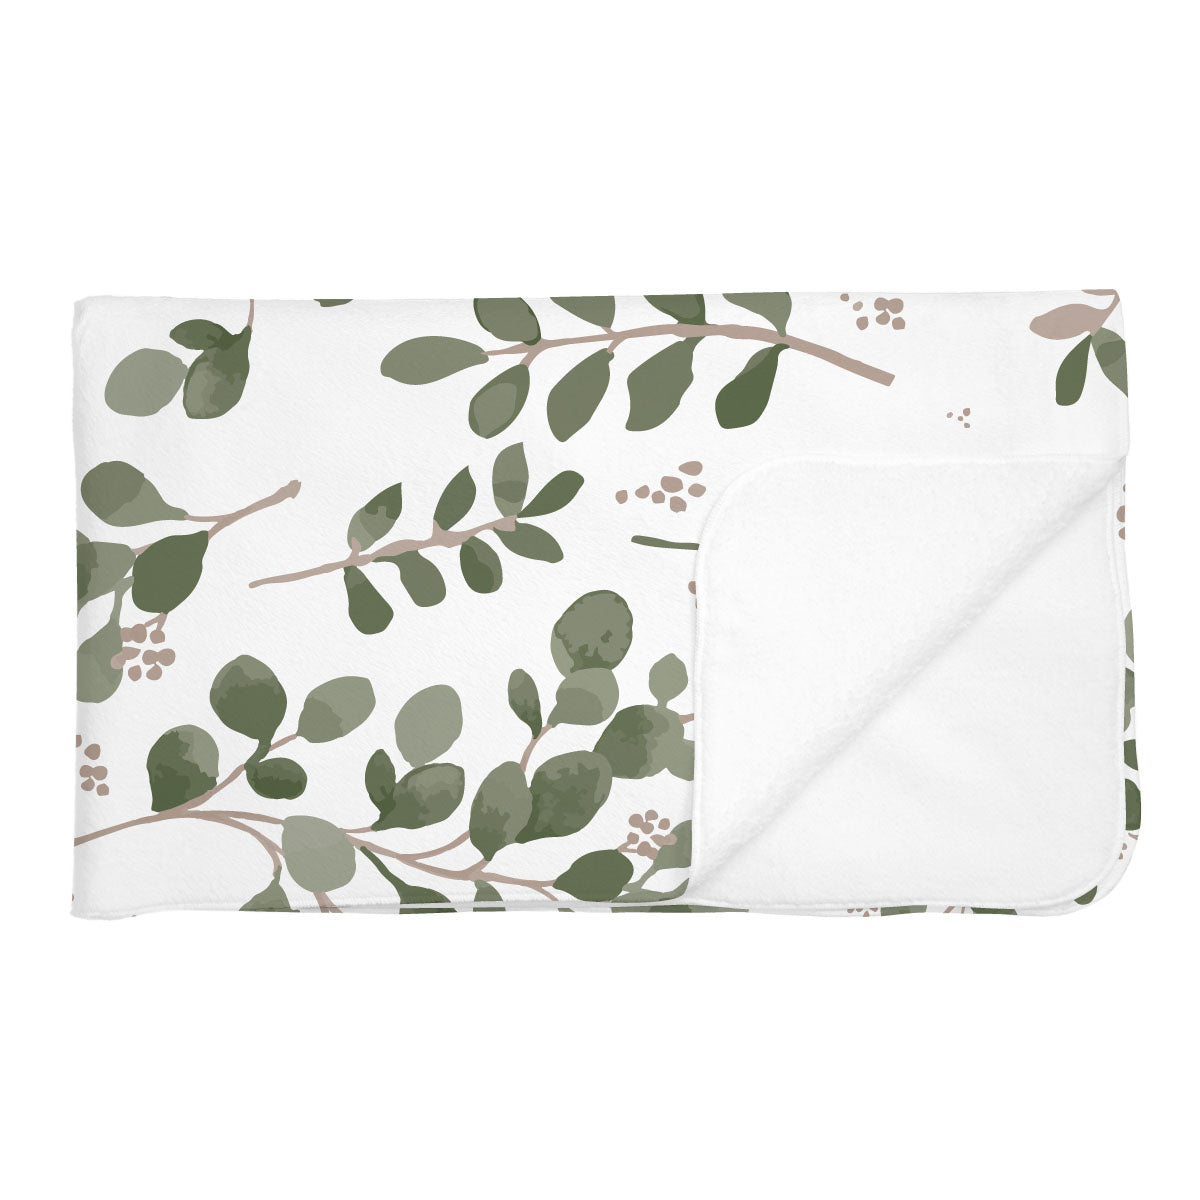 Charley's Farmhouse Greenery | Adult Size Blanket